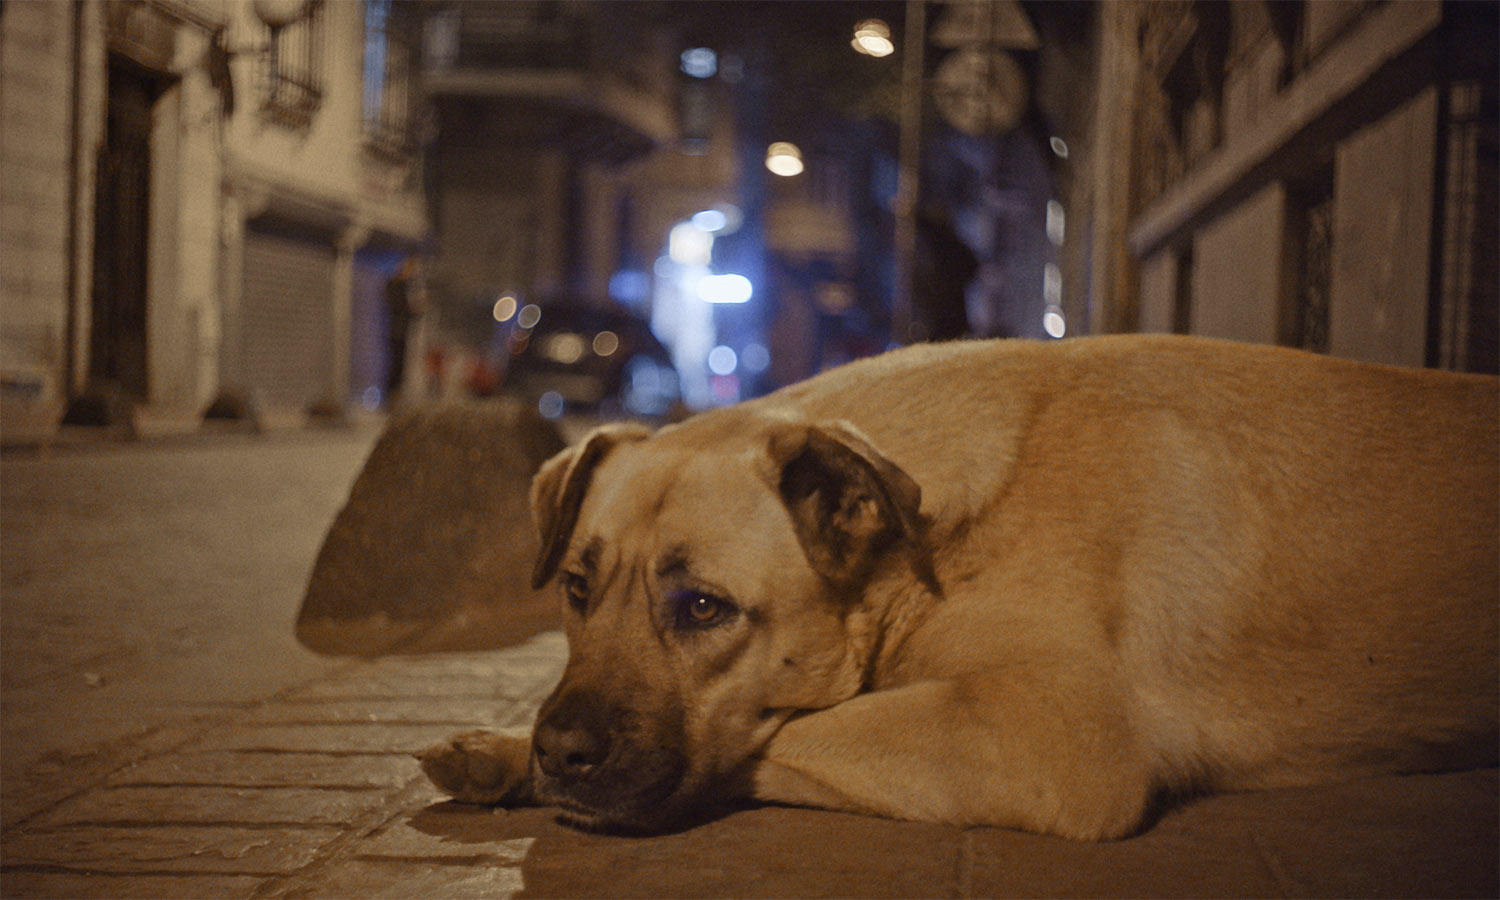 Zeytin, one of the dogs in Elizabeth Lo's 'Stray.' is lost in thought after a fight. Courtesy of Magnolia Pictures and Elizabeth Lo